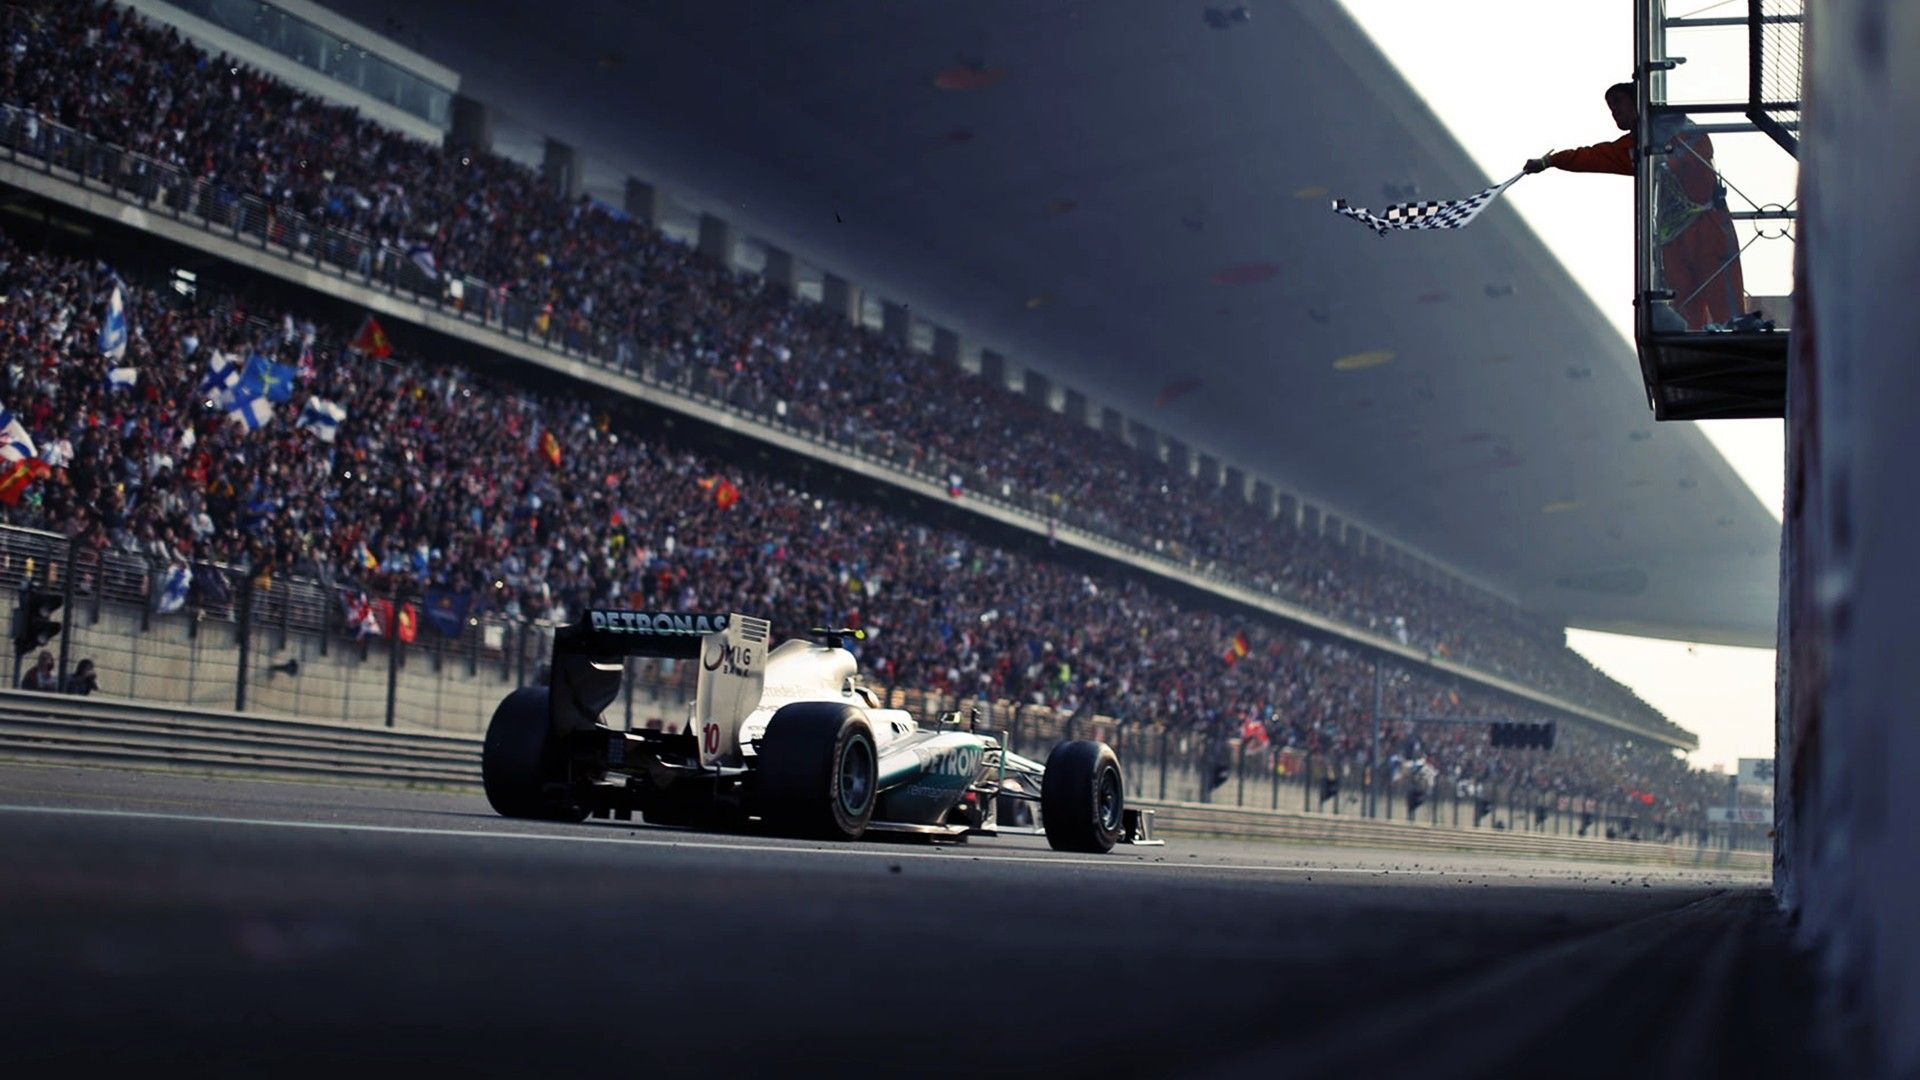 f1 racse wallpaper hd widescreen wallpaper | racamach~o | pinterest